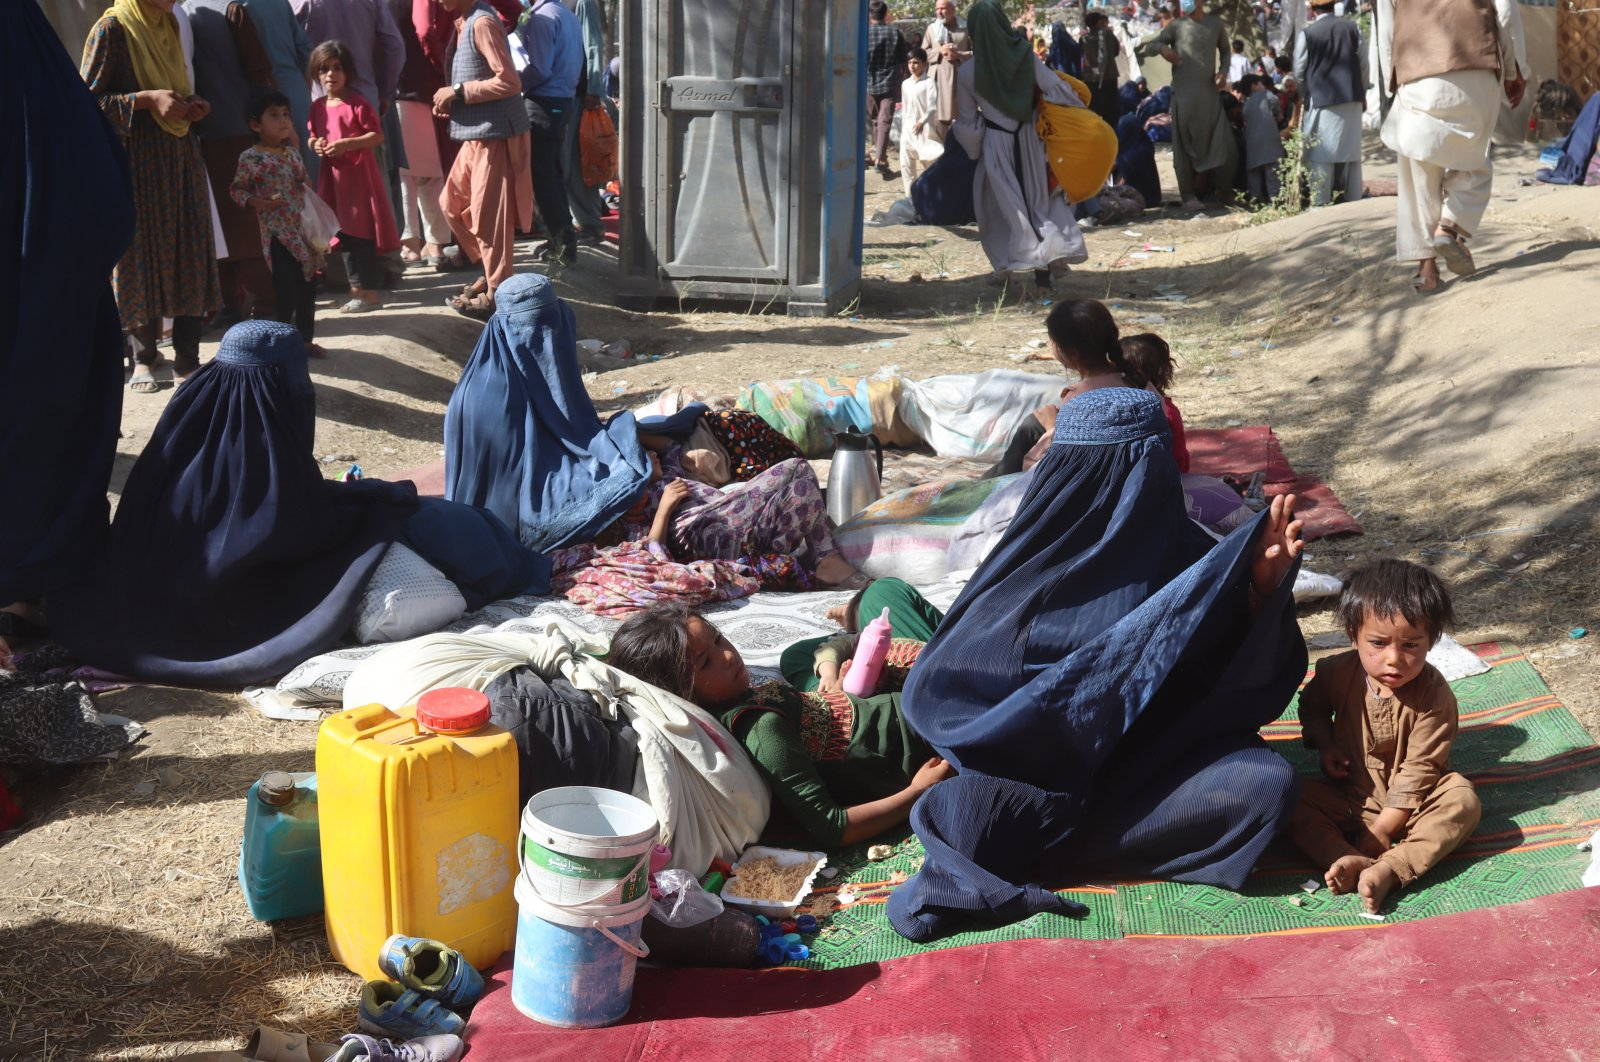 Afghans who are displaced from Kunduz and Takhar provinces due to fighting between Taliban and Afghan forces live in temporary shelters at a camp in Kabul, Afghanistan, Aug. 10, 2021 (EPA File Photo)